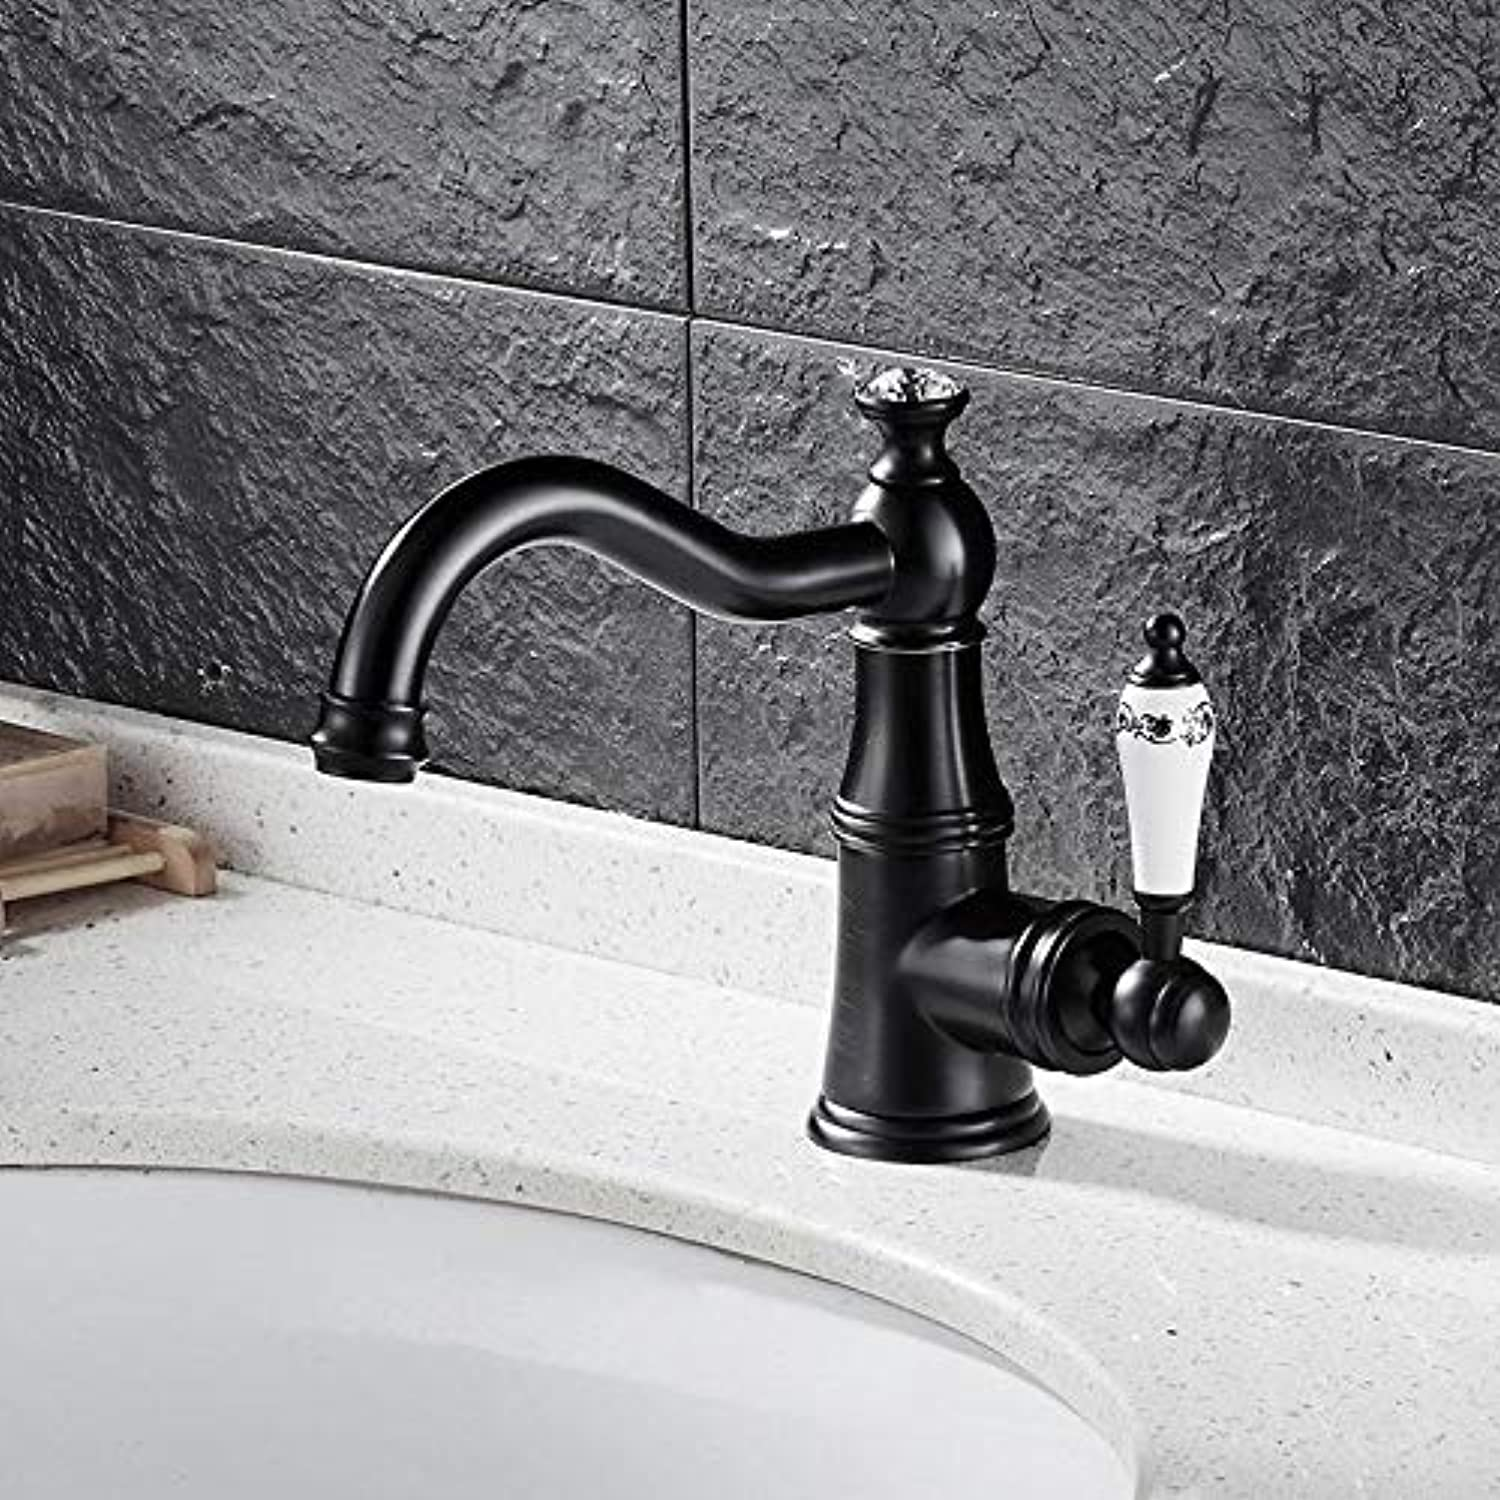 Decorry Antique Swivel Kitchen Faucets Brass Brushed Black Diamond Bathroom Faucet bluee White Porcelain Single Handle Sink Taps Hot Cold